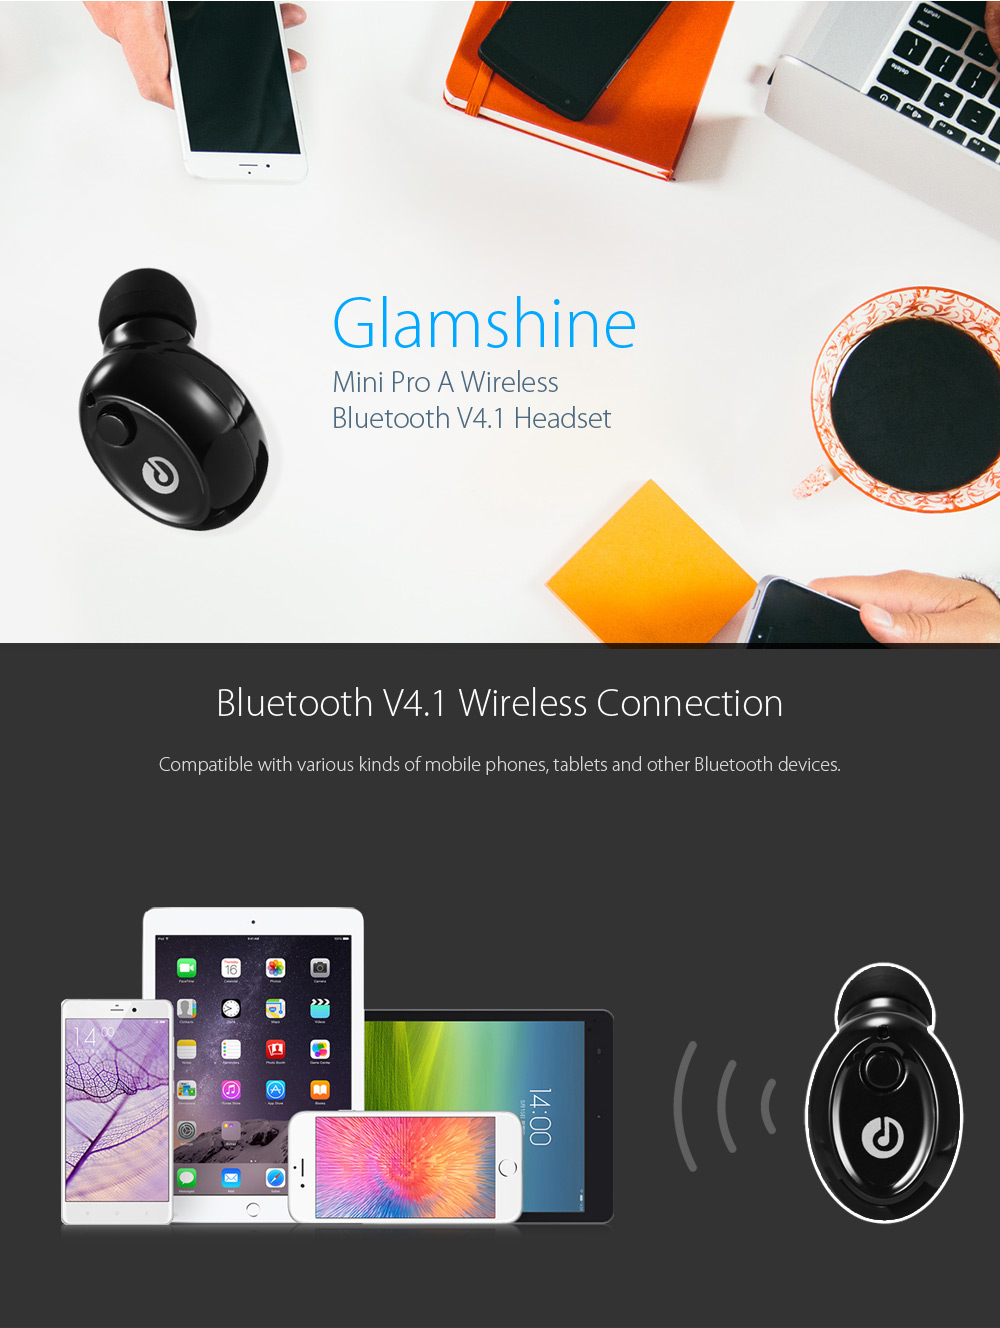 Glamshine Mini Pro A Wireless Bluetooth V4.1 Music Headset with Foldable USB Charger